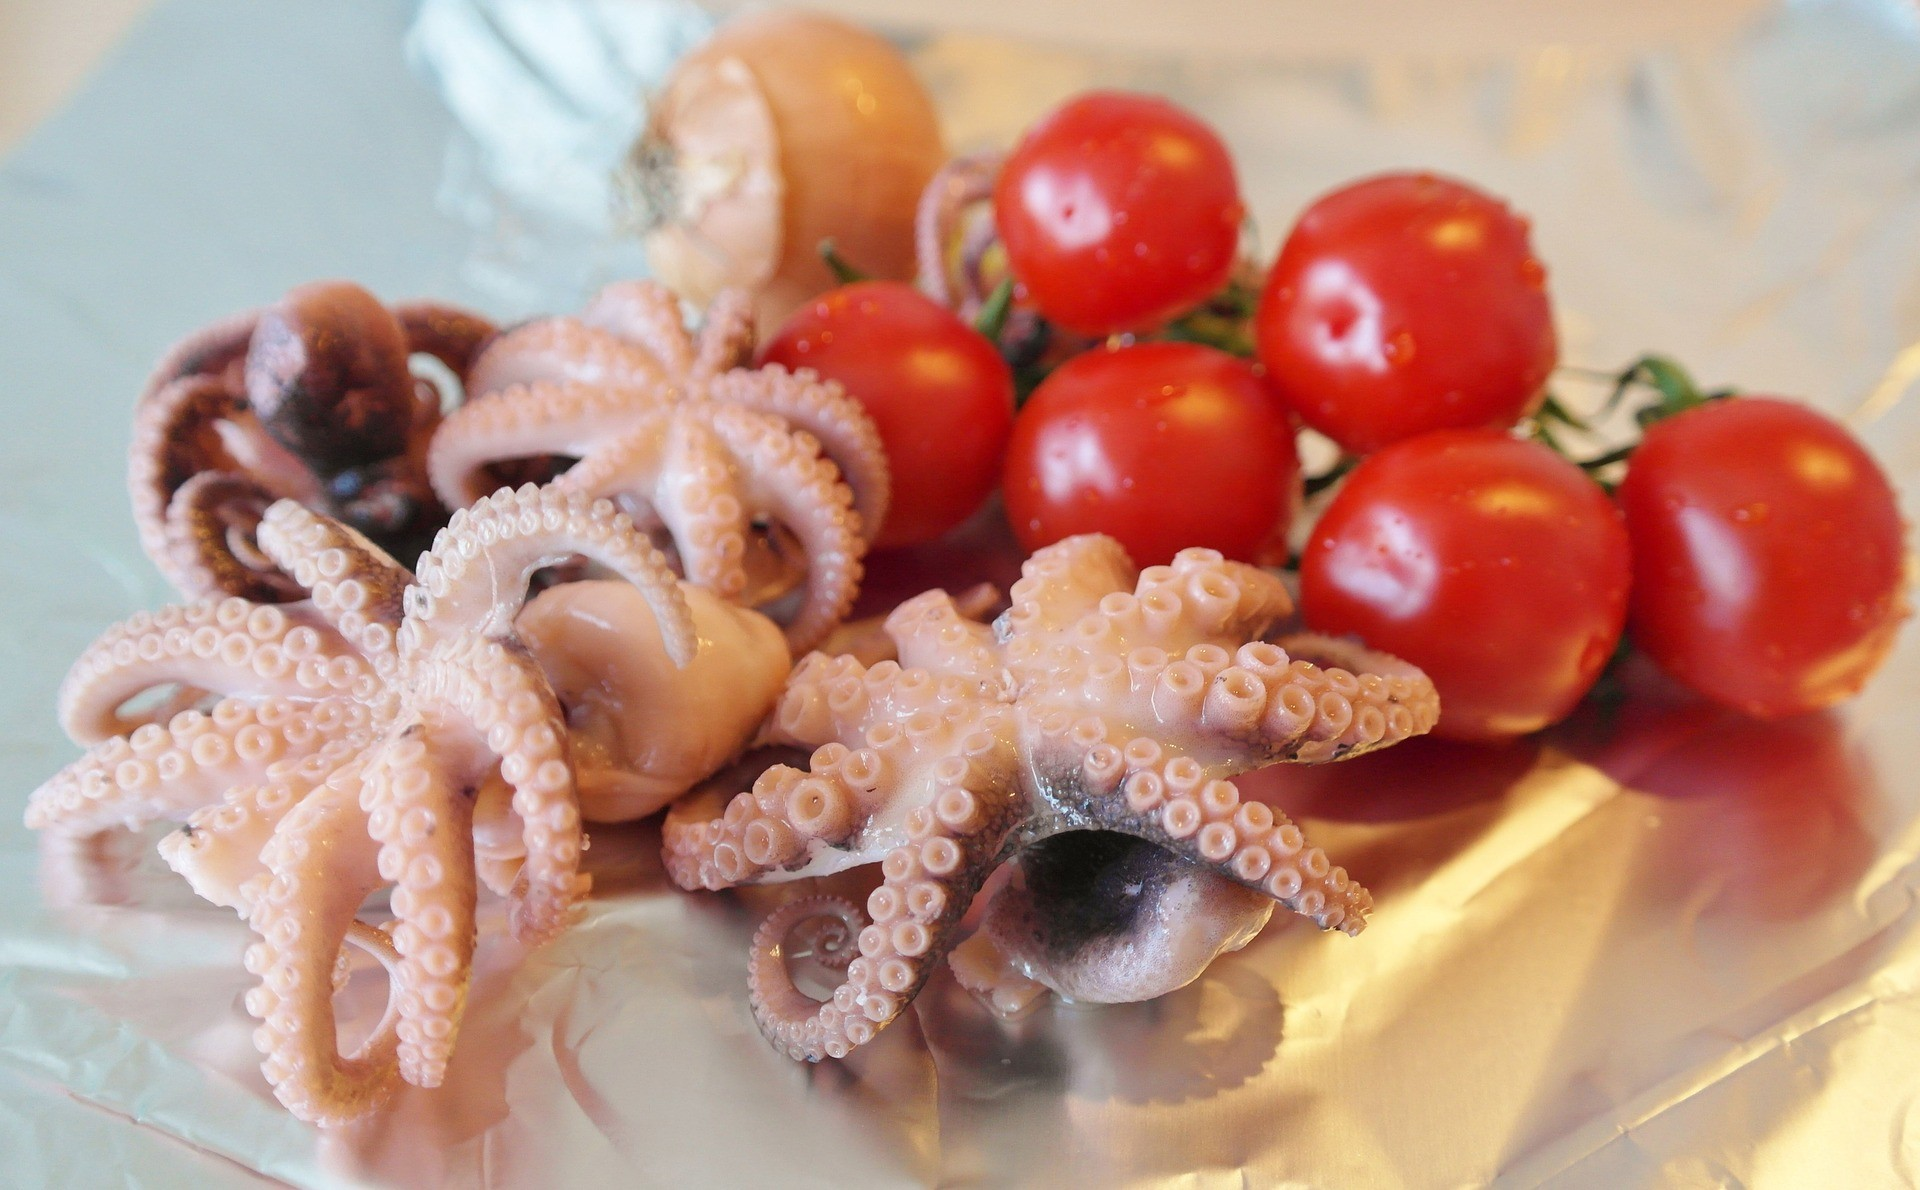 Taming the octopus